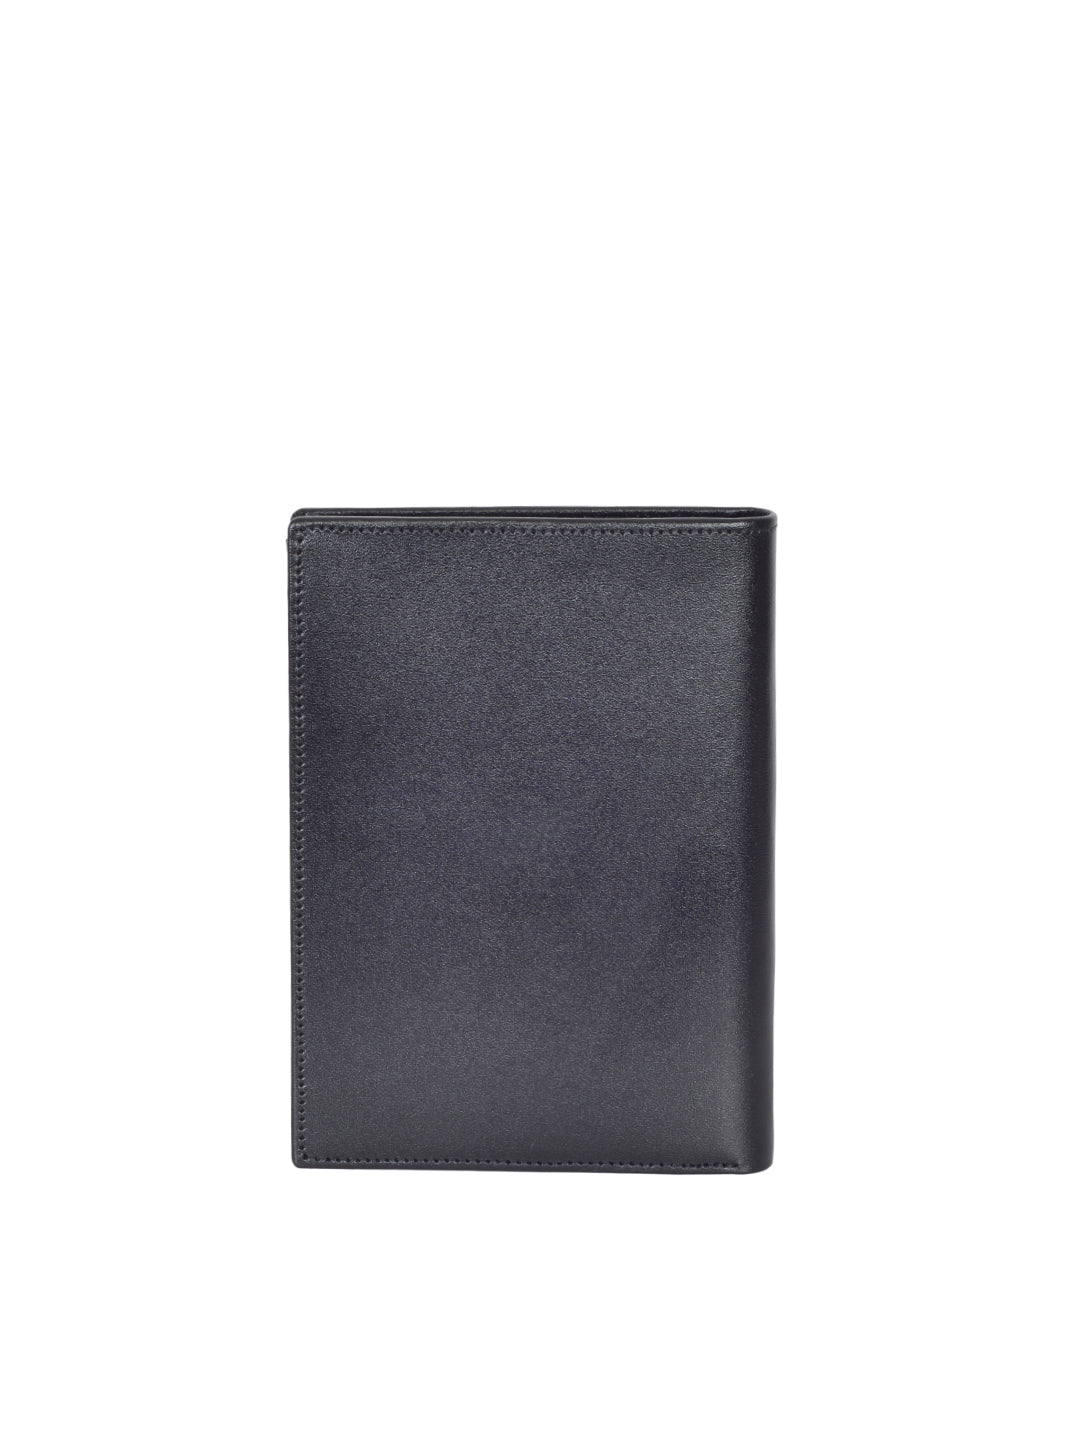 MONT BLANC MEN'S Meisterst��ck 4CC LEATHER BUSINESS CARD